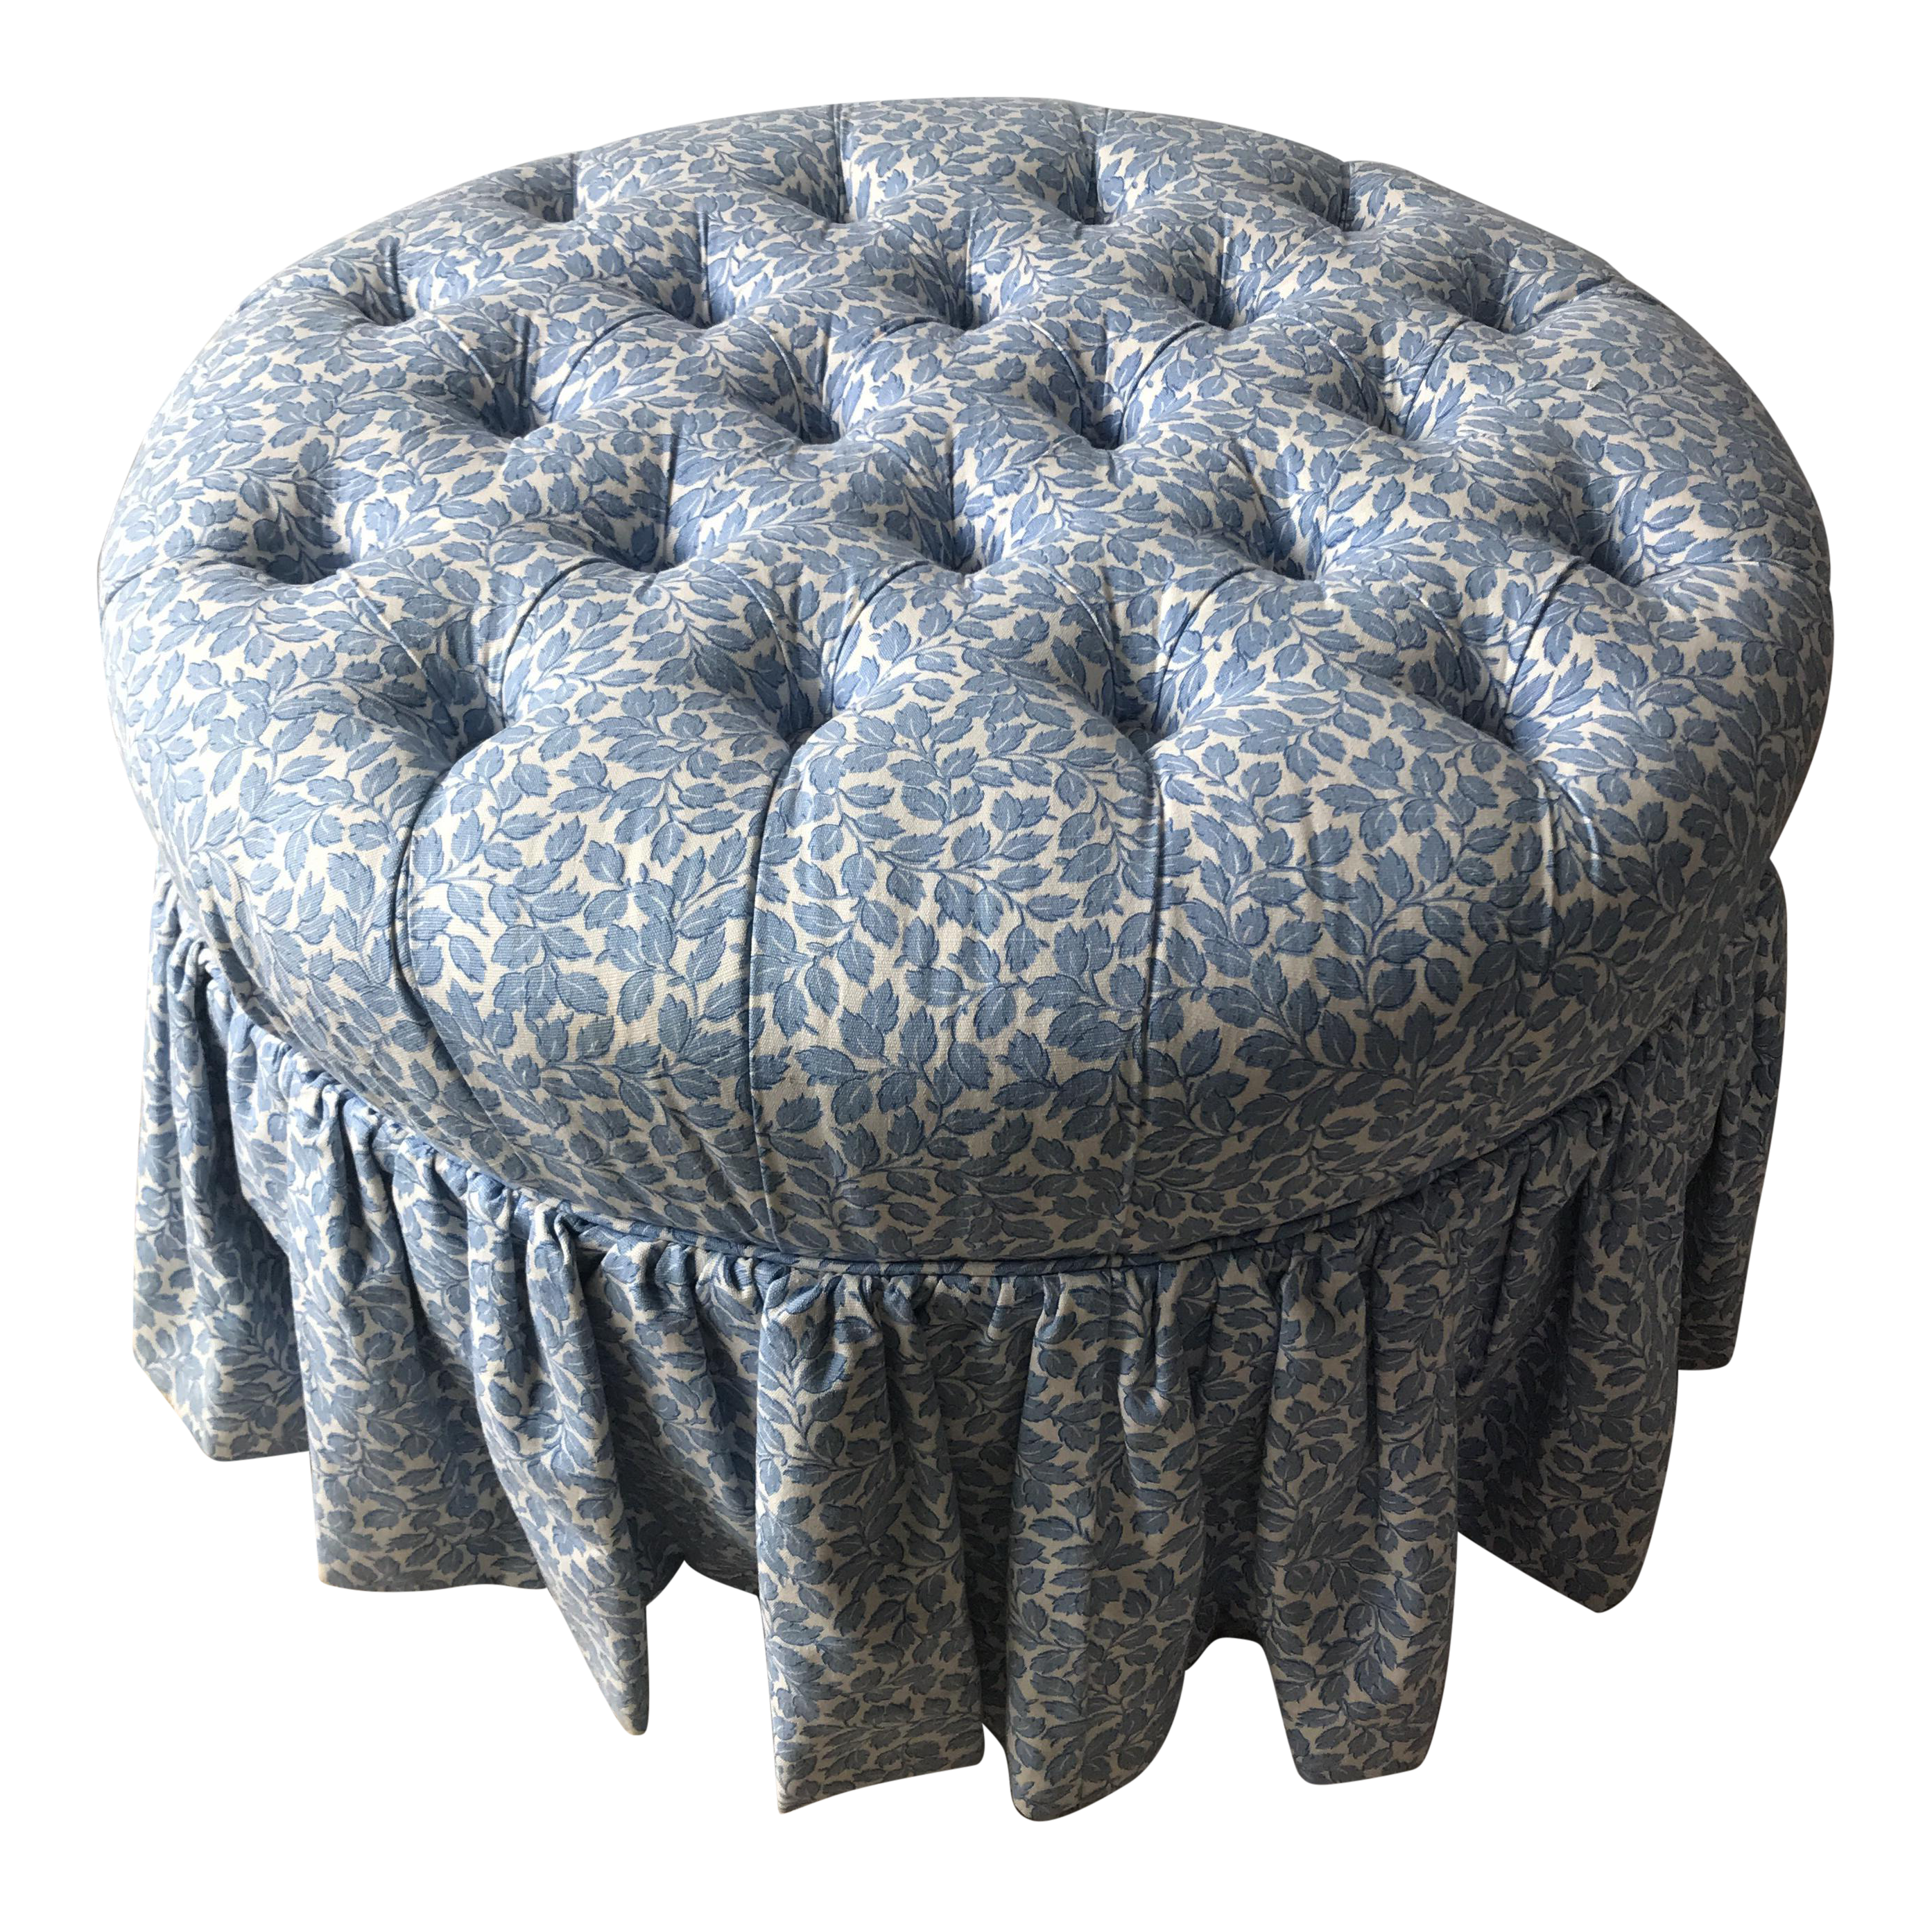 Shabby Chic Ethan Allen Blue and White Floral Round Tufted Ottoman ...